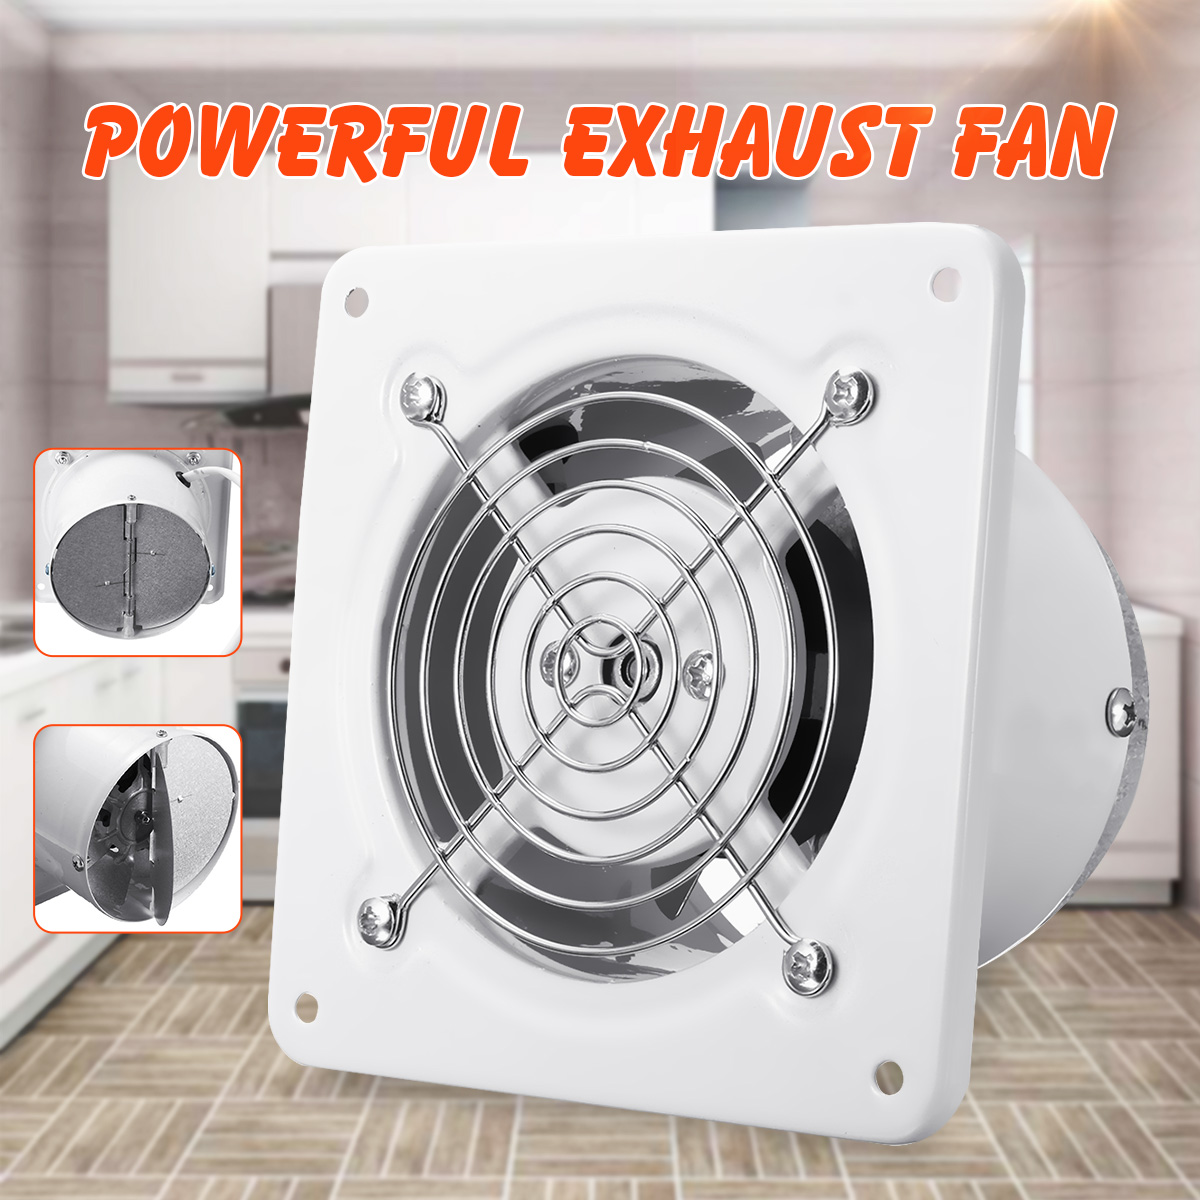 4 Inch 20w 220v Silent Exhaust Fan Kitchen Bathroom Toilet Window Wall Ventilation Exhaust Blower Air Cleaning Cooling Vent Fan